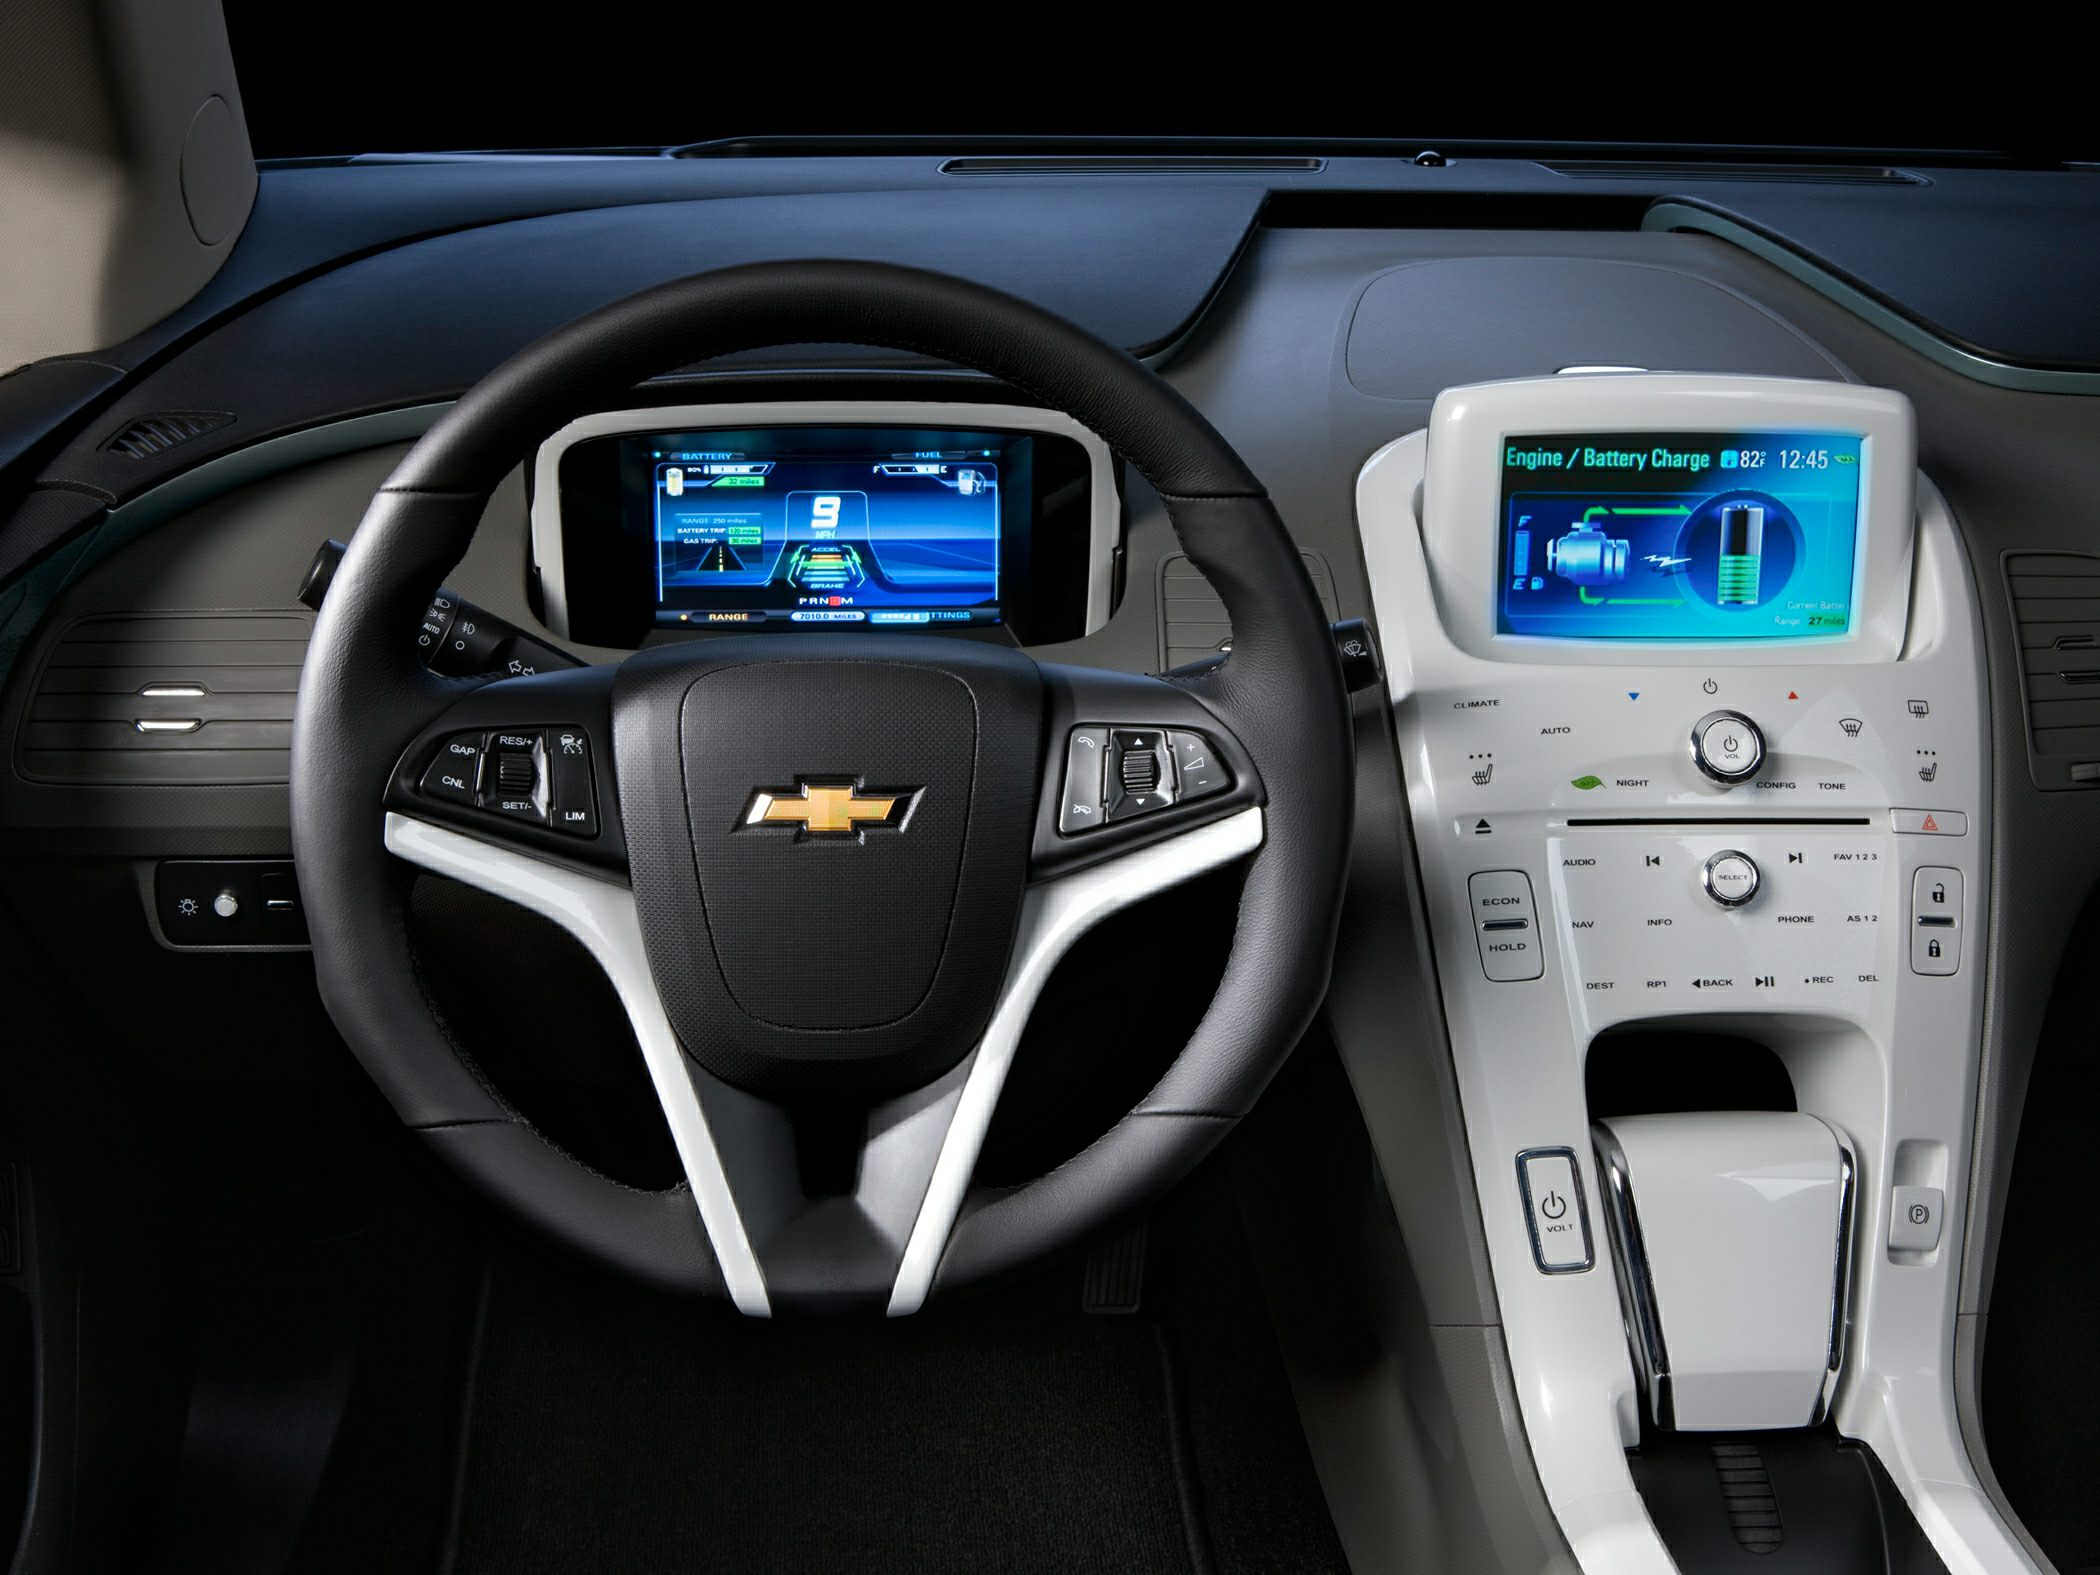 2011 Chevy Camaro Engine Diagram Wiring Library 2013 Chevrolet Volt 337px Image 10 Cadillac Cts